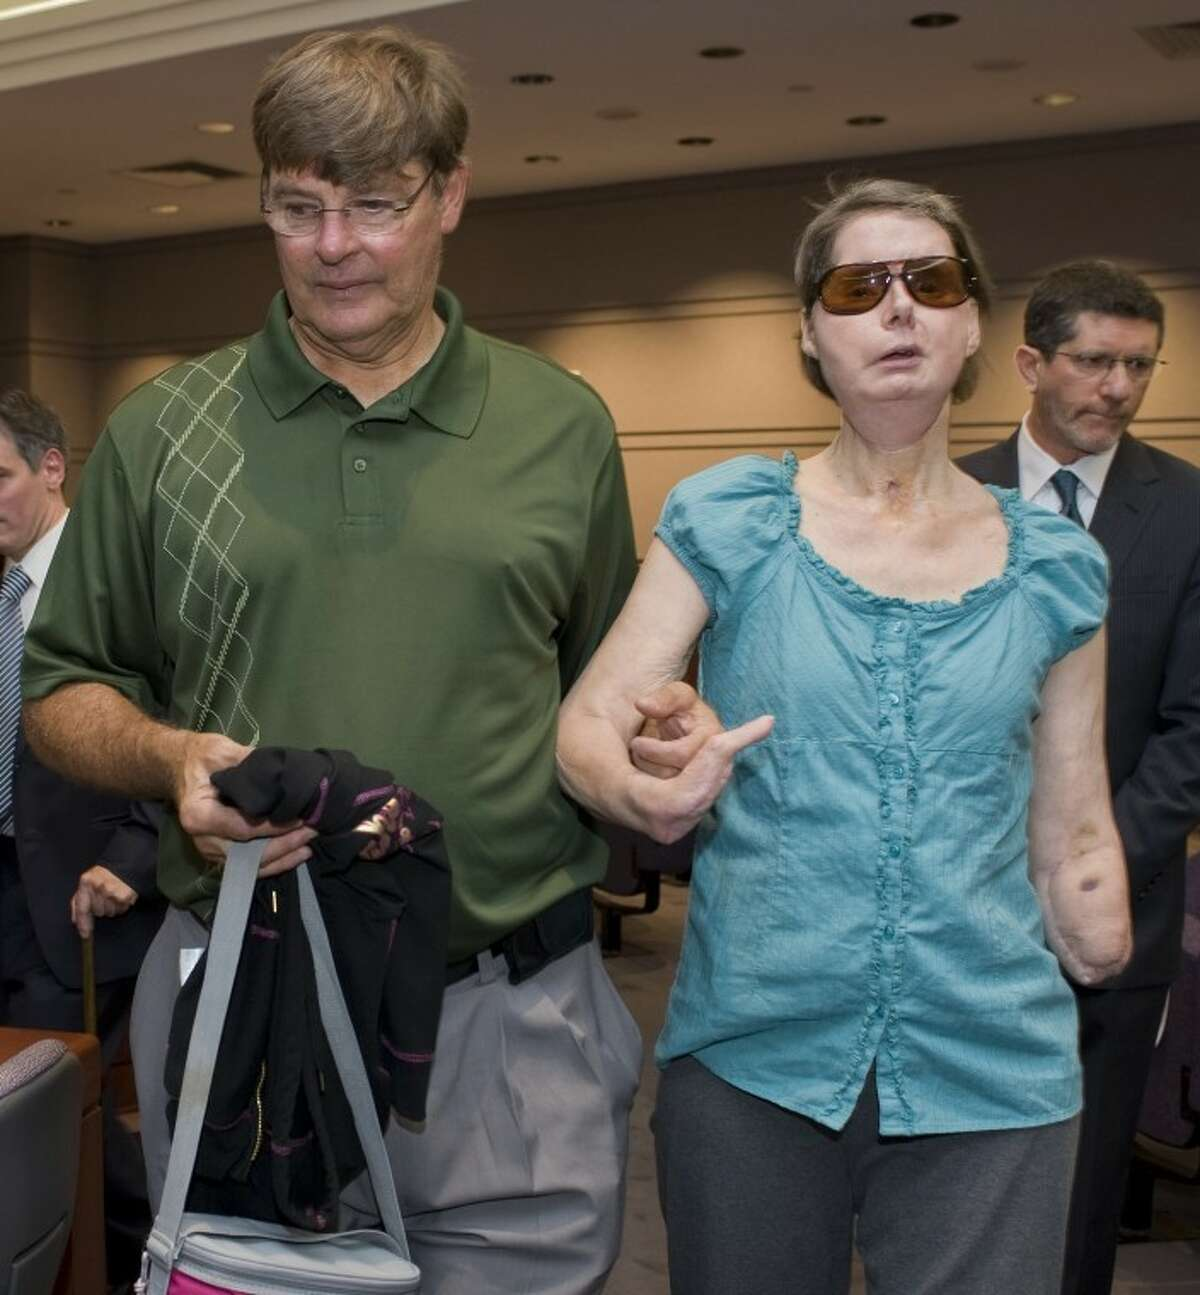 Charla Nash arrives with her brother Stephen, left, for a hearing at the Legislative Office Building in Hartford, Conn., Friday, Aug. 10, 2012. Nash who was mauled in a 2009 chimpanzee attack is attending a hearing to determine whether she may sue the state for $150 million in claimed damages. (AP Photo/Jessica Hill)